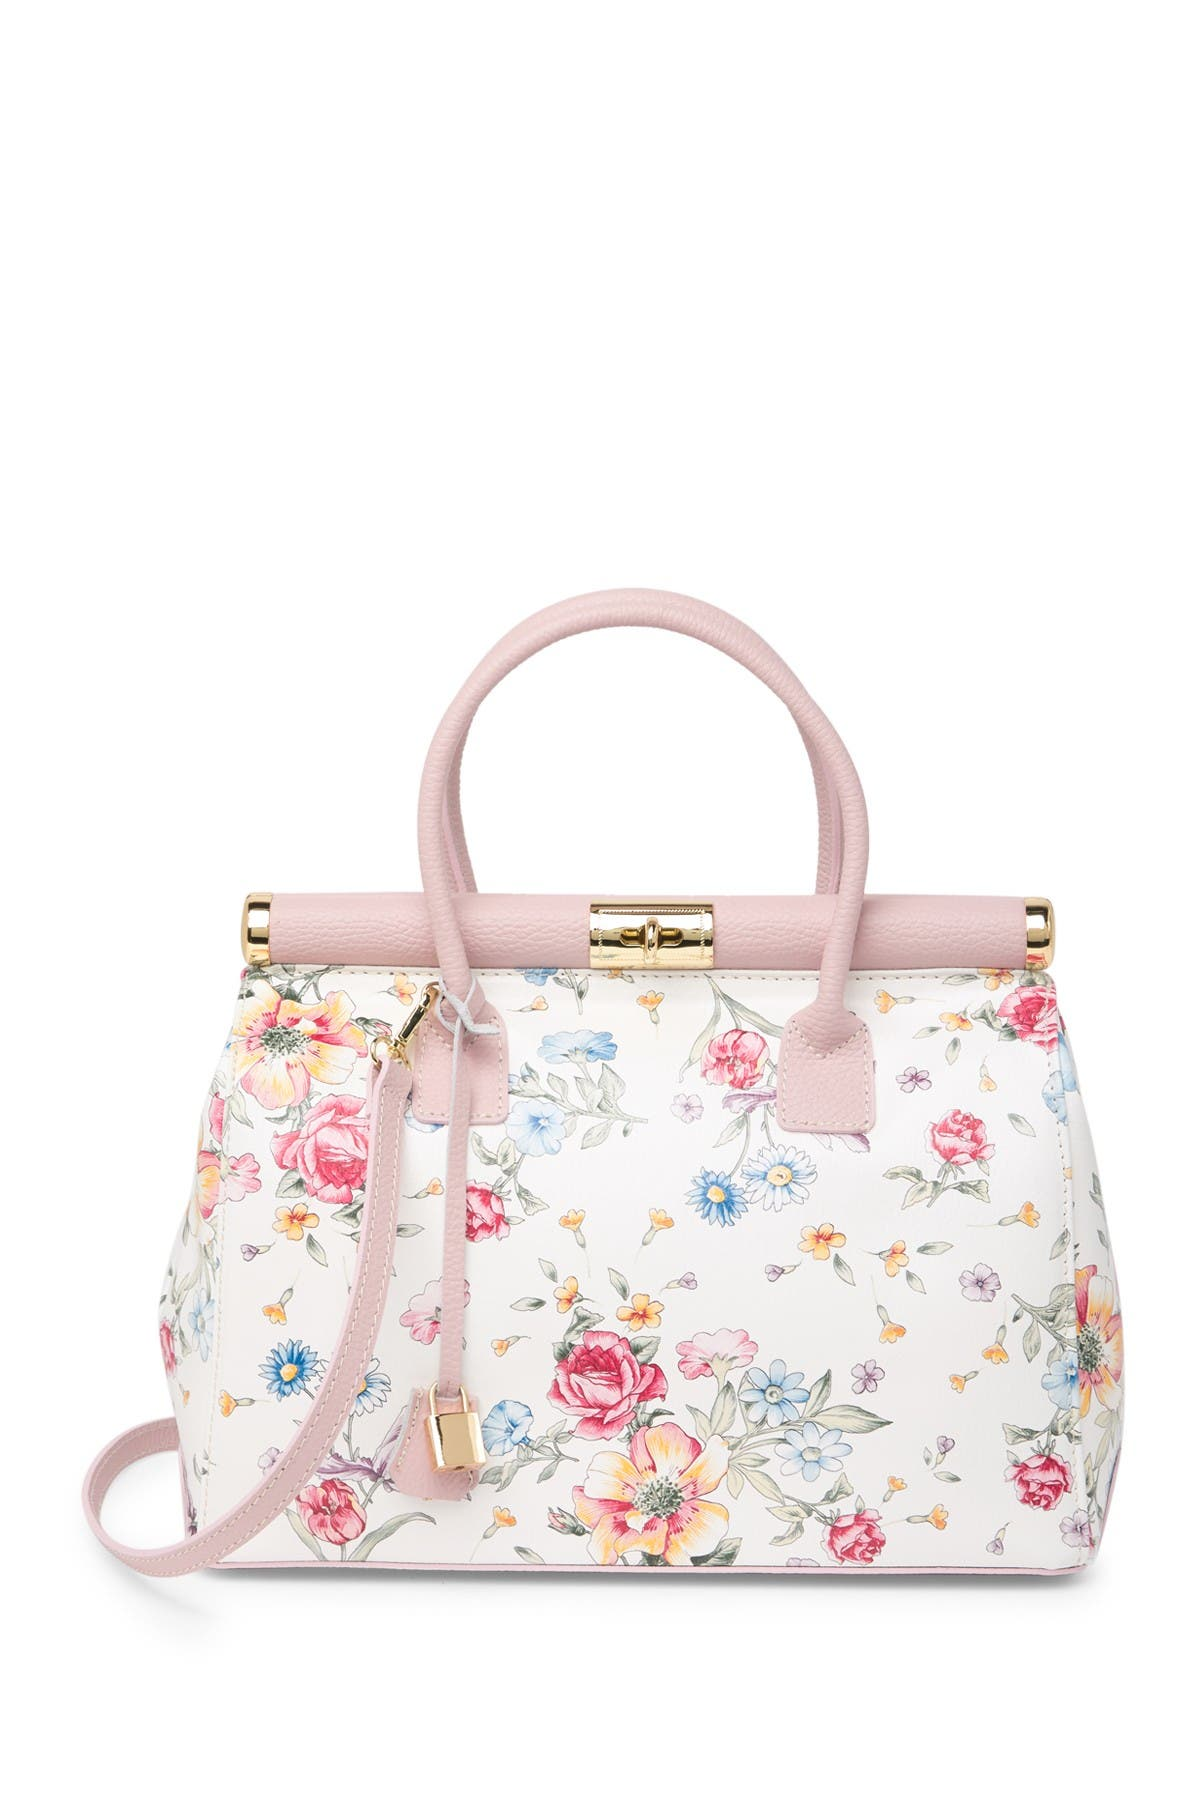 Image of Renata Corsi Floral Leather Shoulder Bag